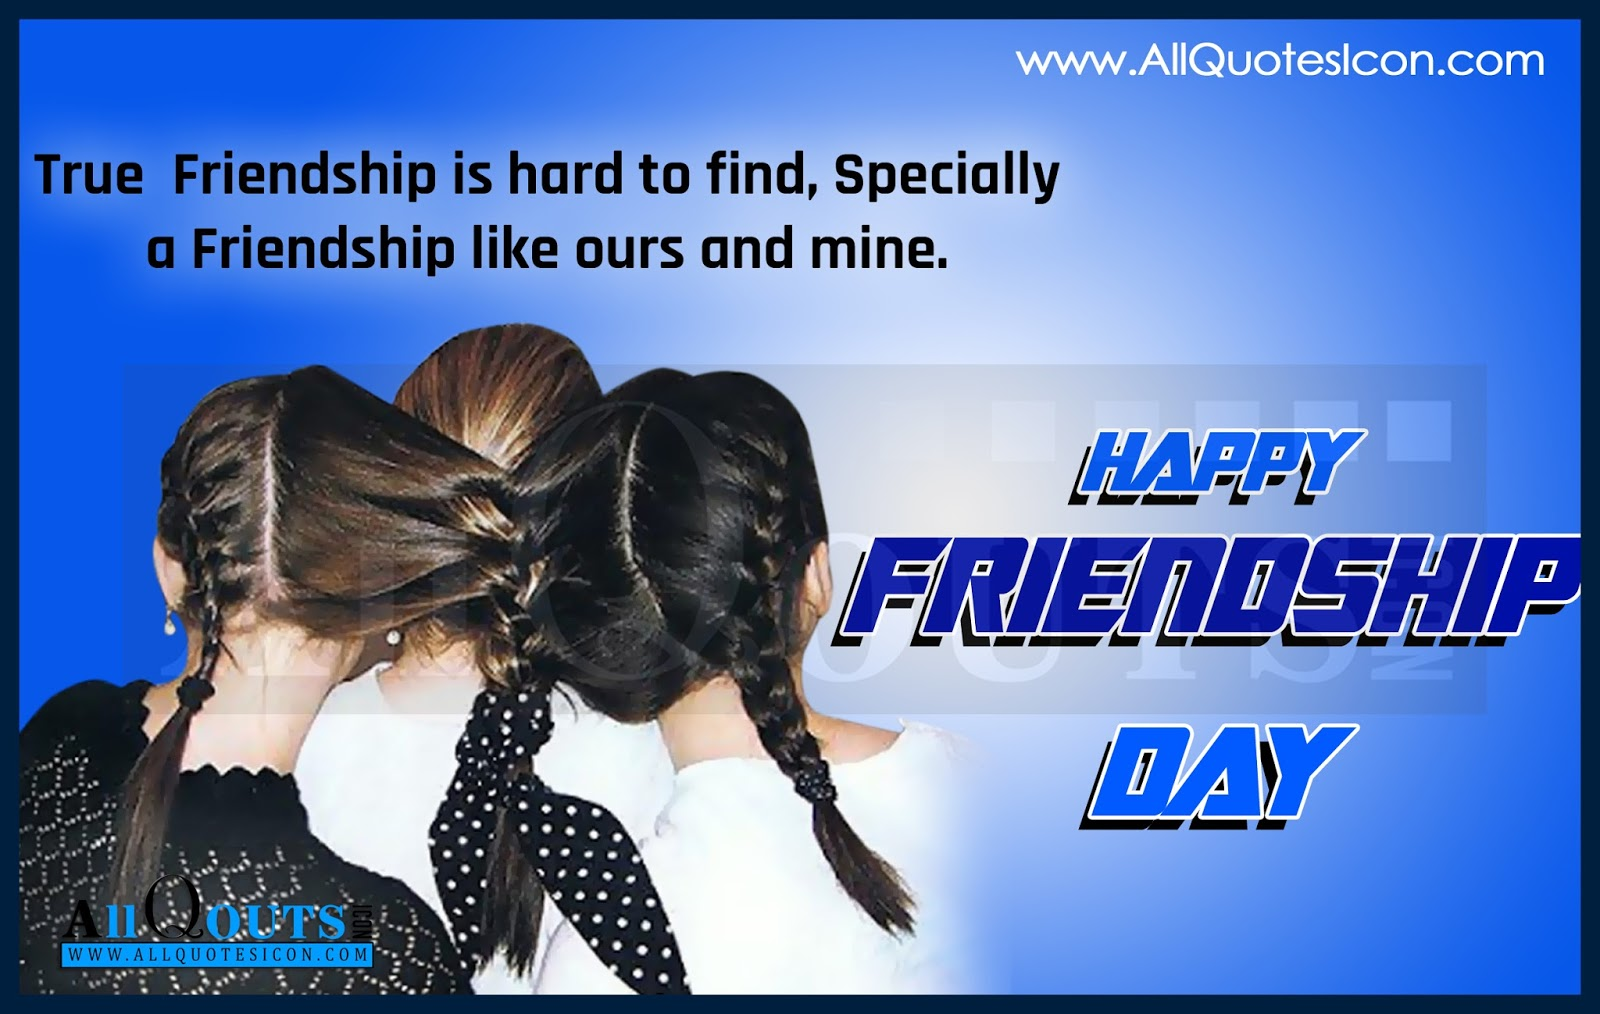 Best Wishes For Friendship Day Hd Wallpapers True Freinds English